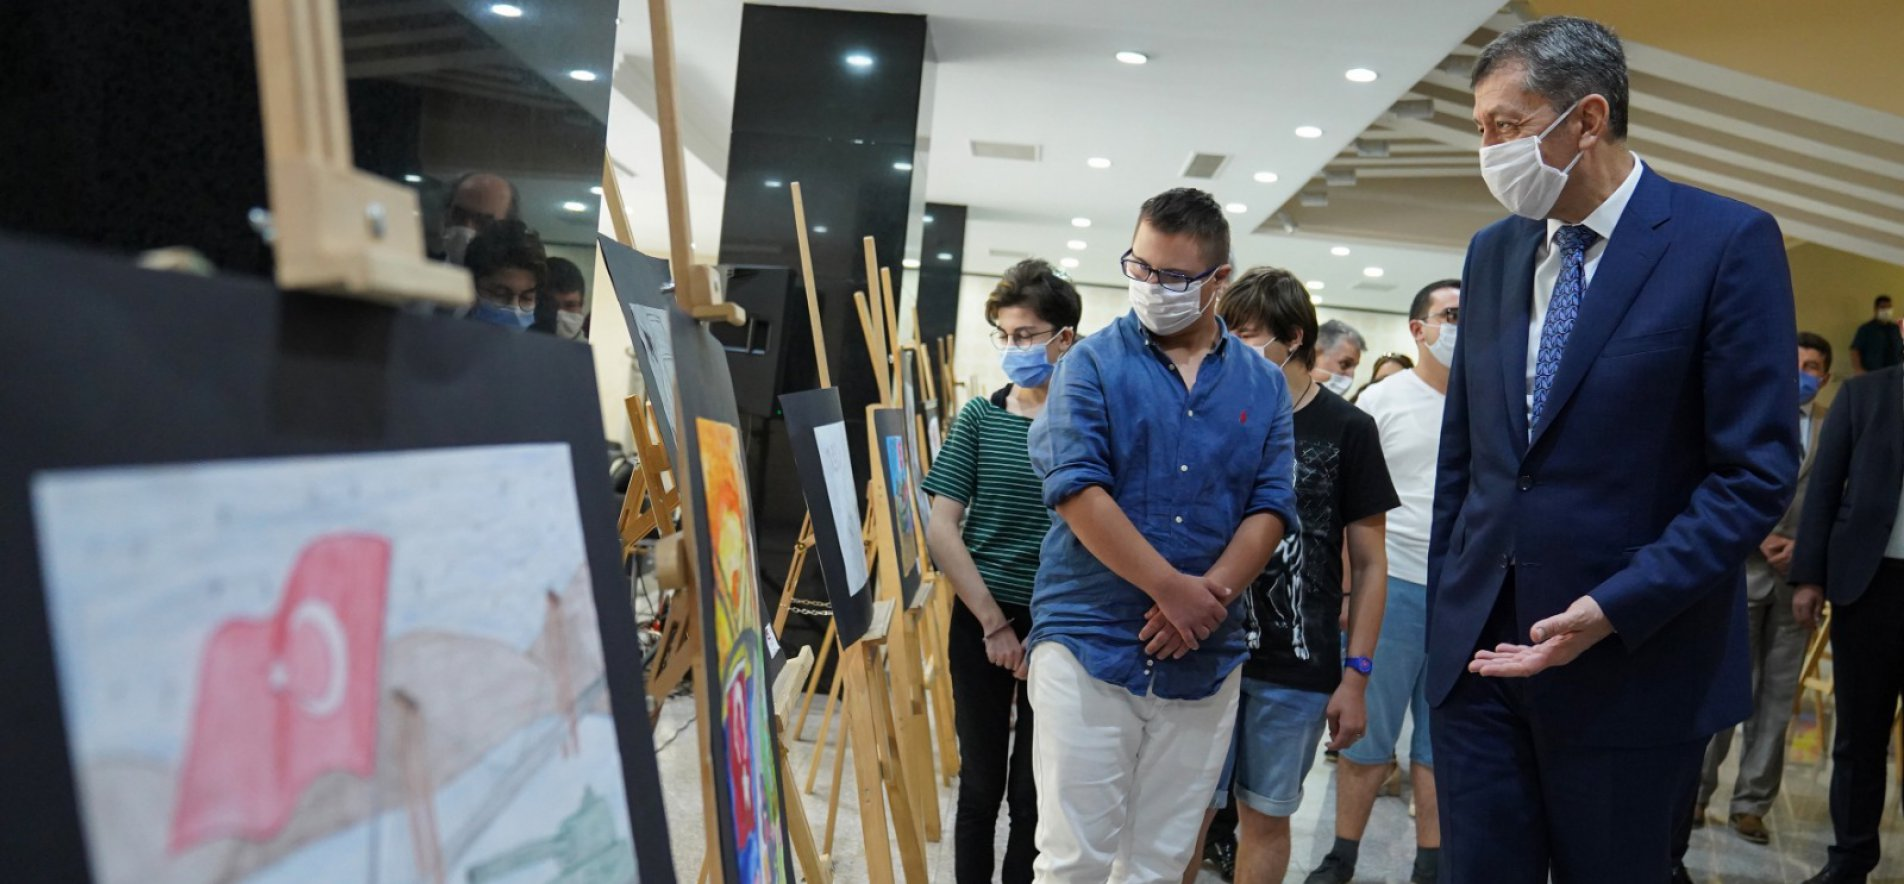 MINISTER SELÇUK INAUGURATES JULY 15 DEMOCRACY AND NATIONAL SOLIDARITY DAY PAINTING CONTEST EXHIBITION